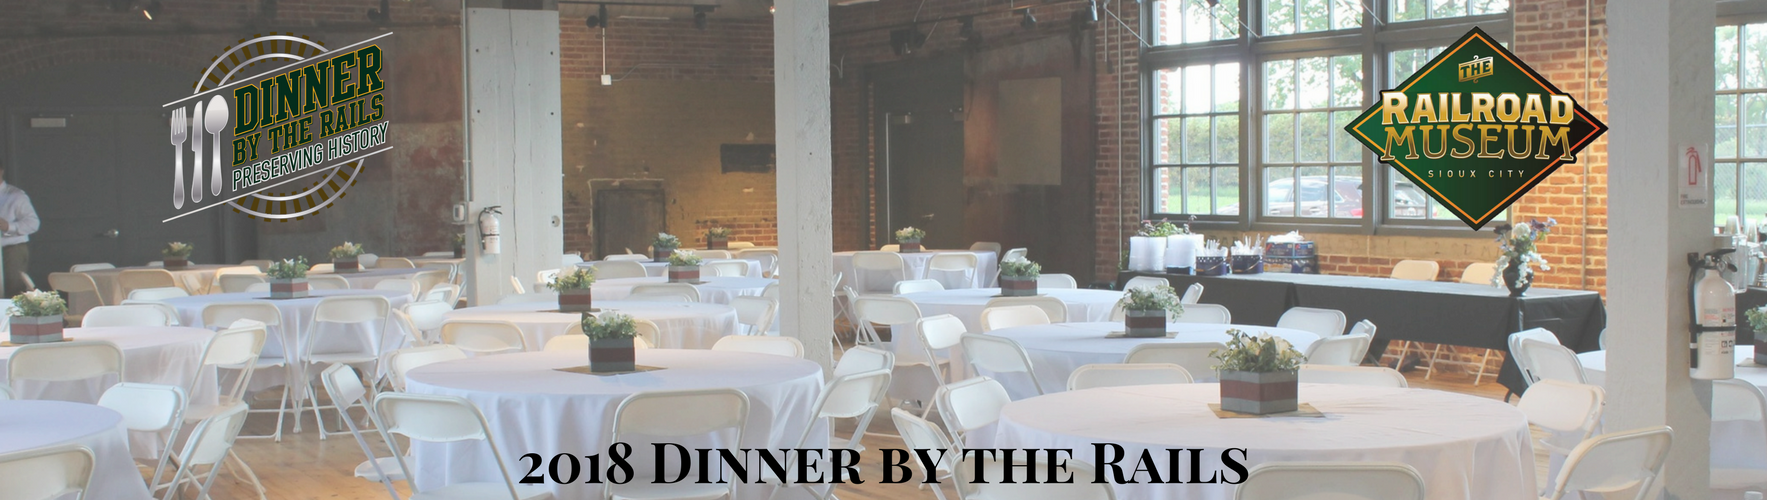 2018 Dinner by the Rails image